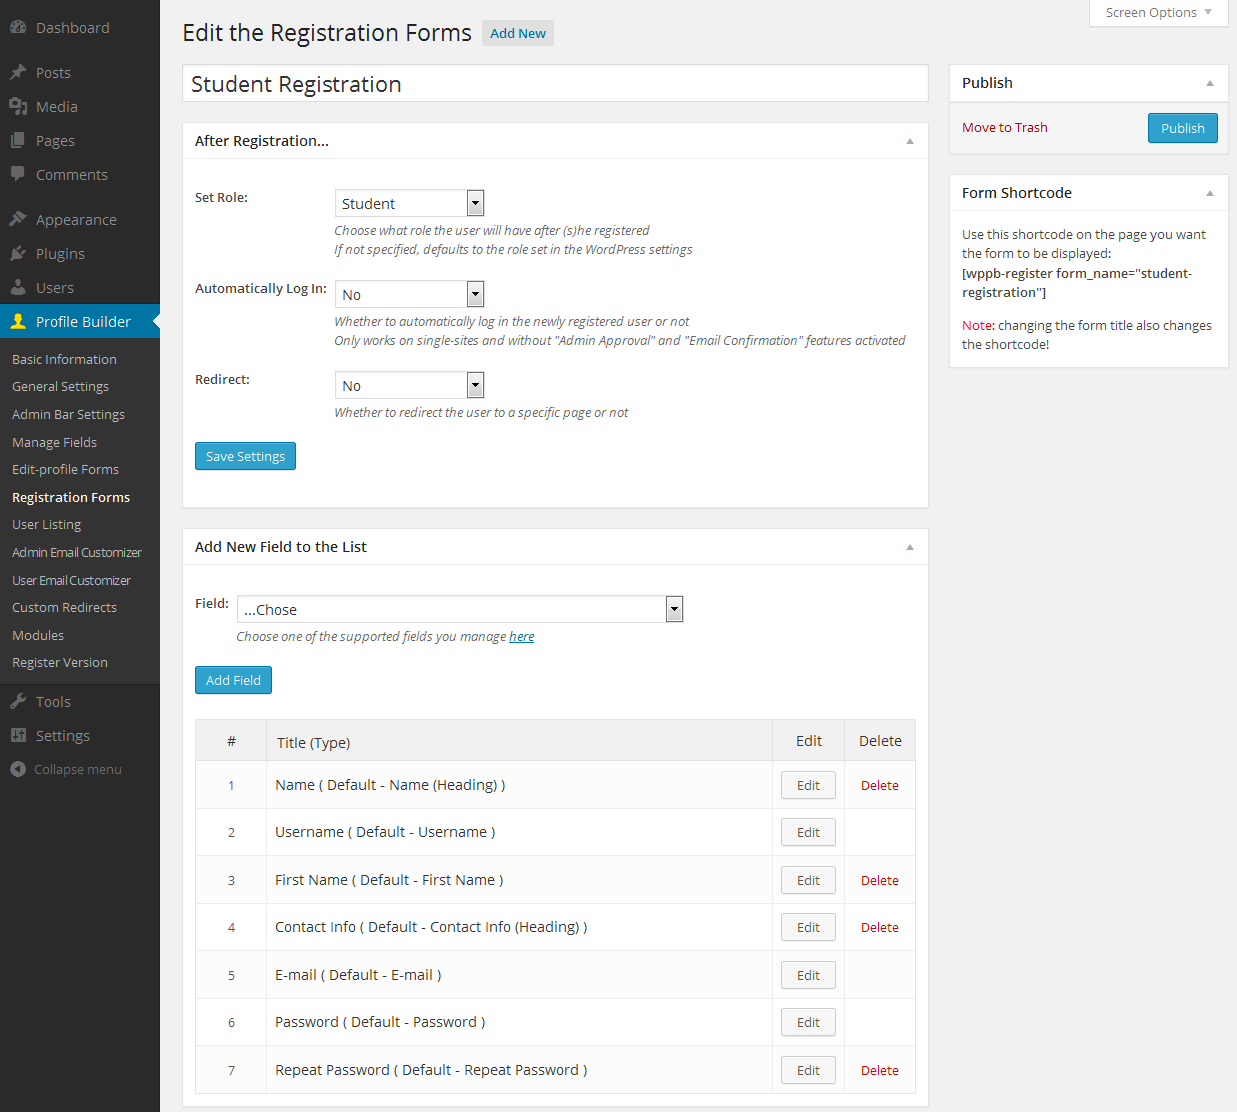 8-pb2.0-new-registration-form-small